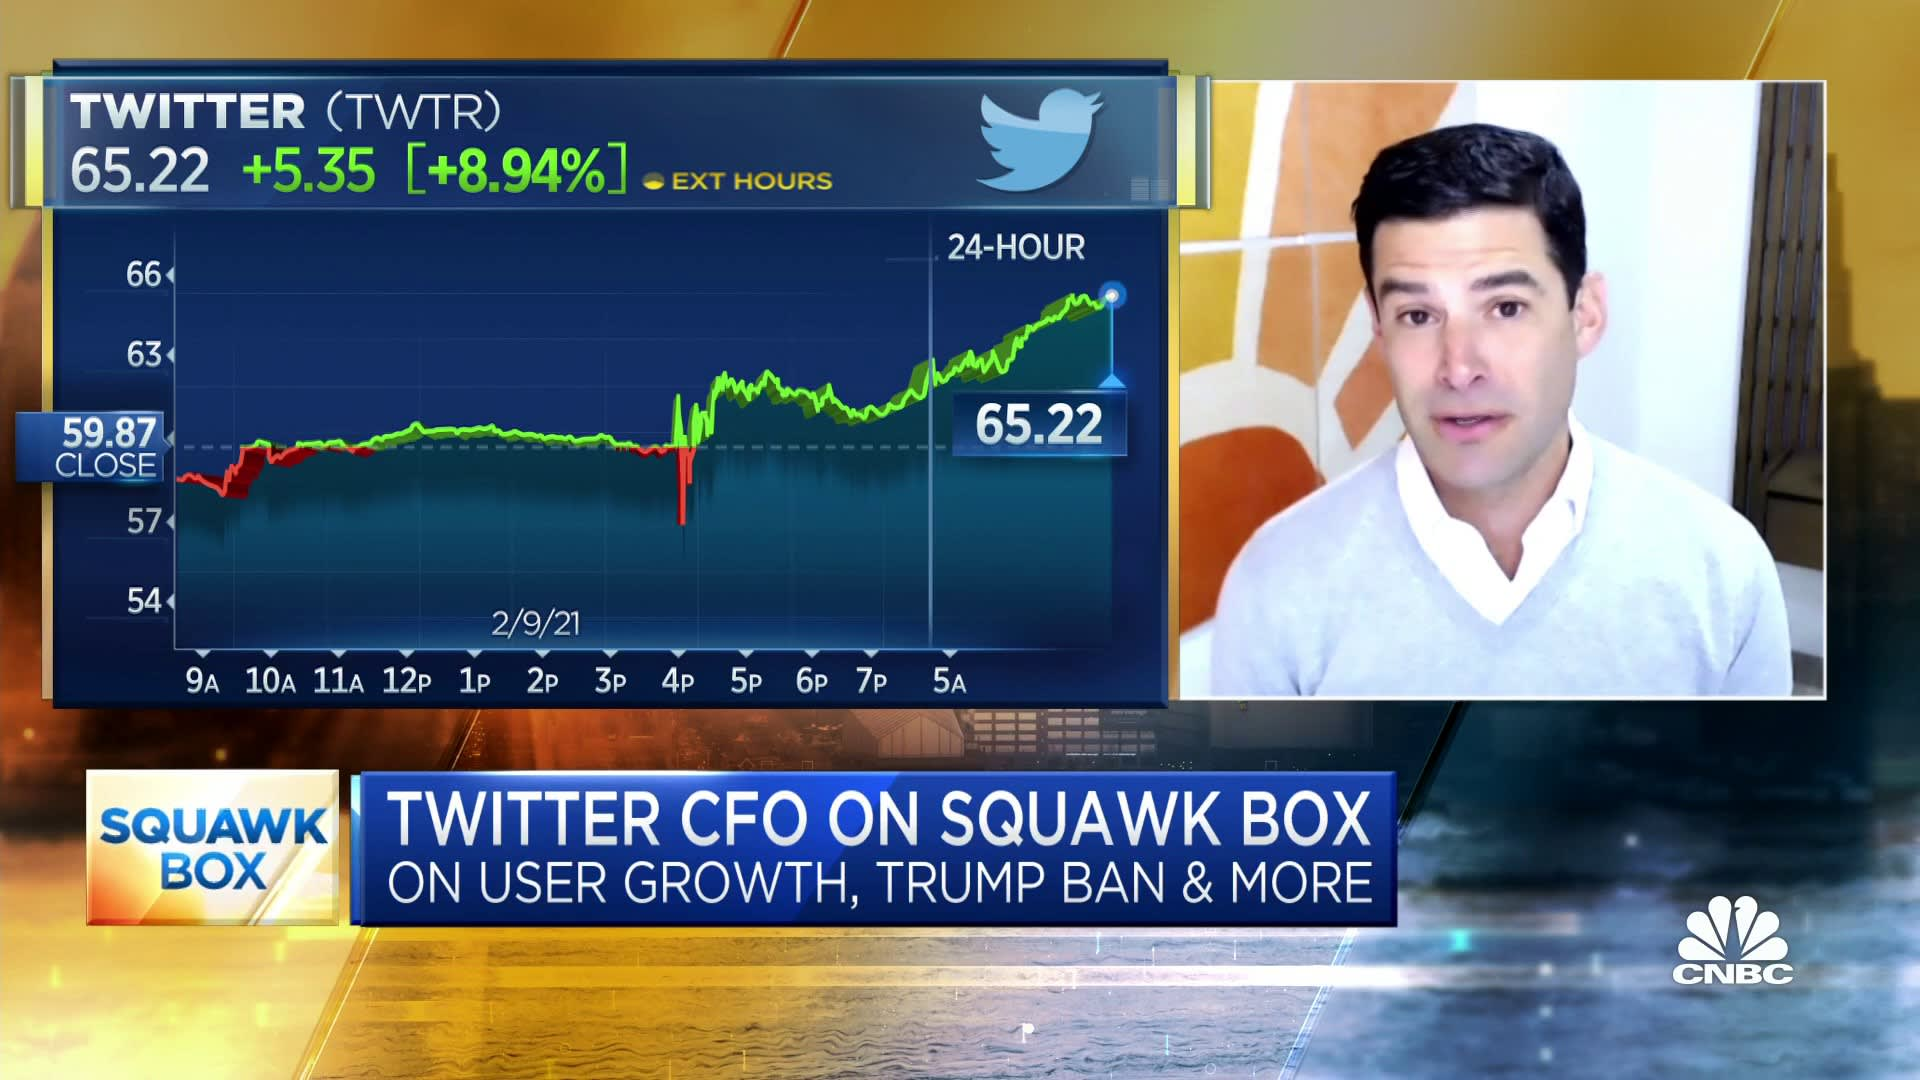 Twitter CFO on fourth-quarter earnings, how the pandemic is affecting user growth and more